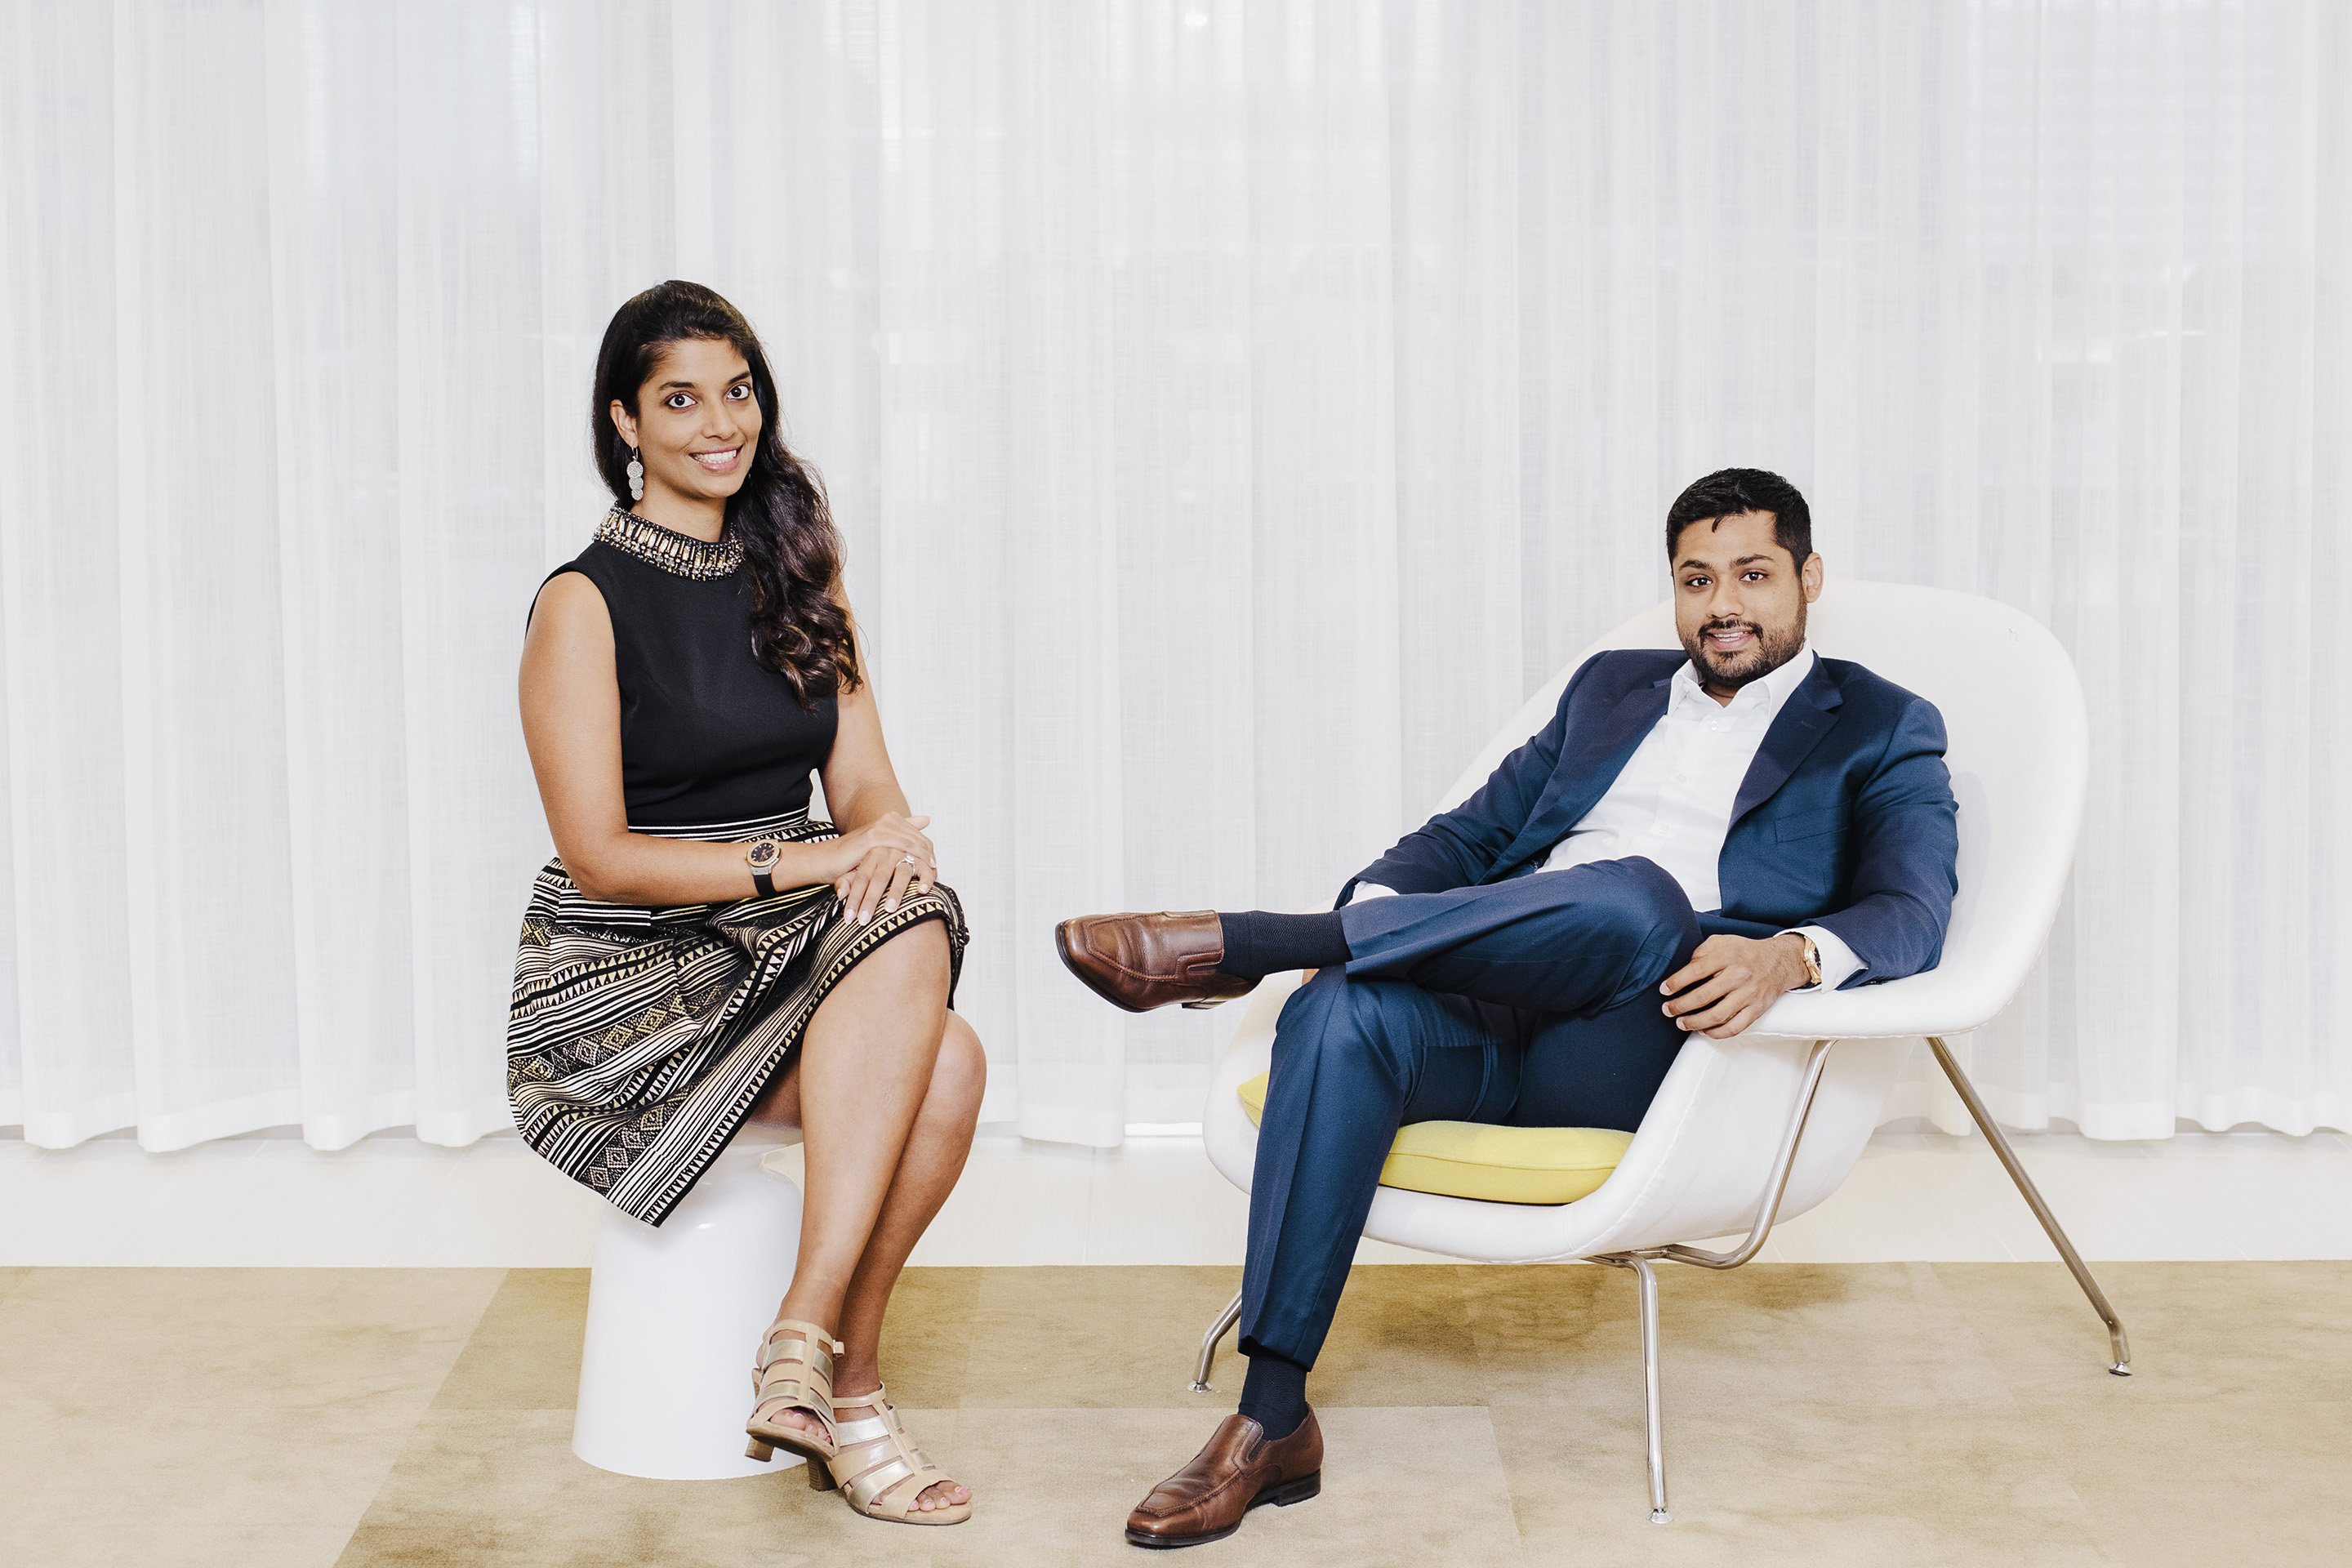 Shradha Agarwal, left, and Rishi Shah, the founders of ContextMedia, in Chicago.